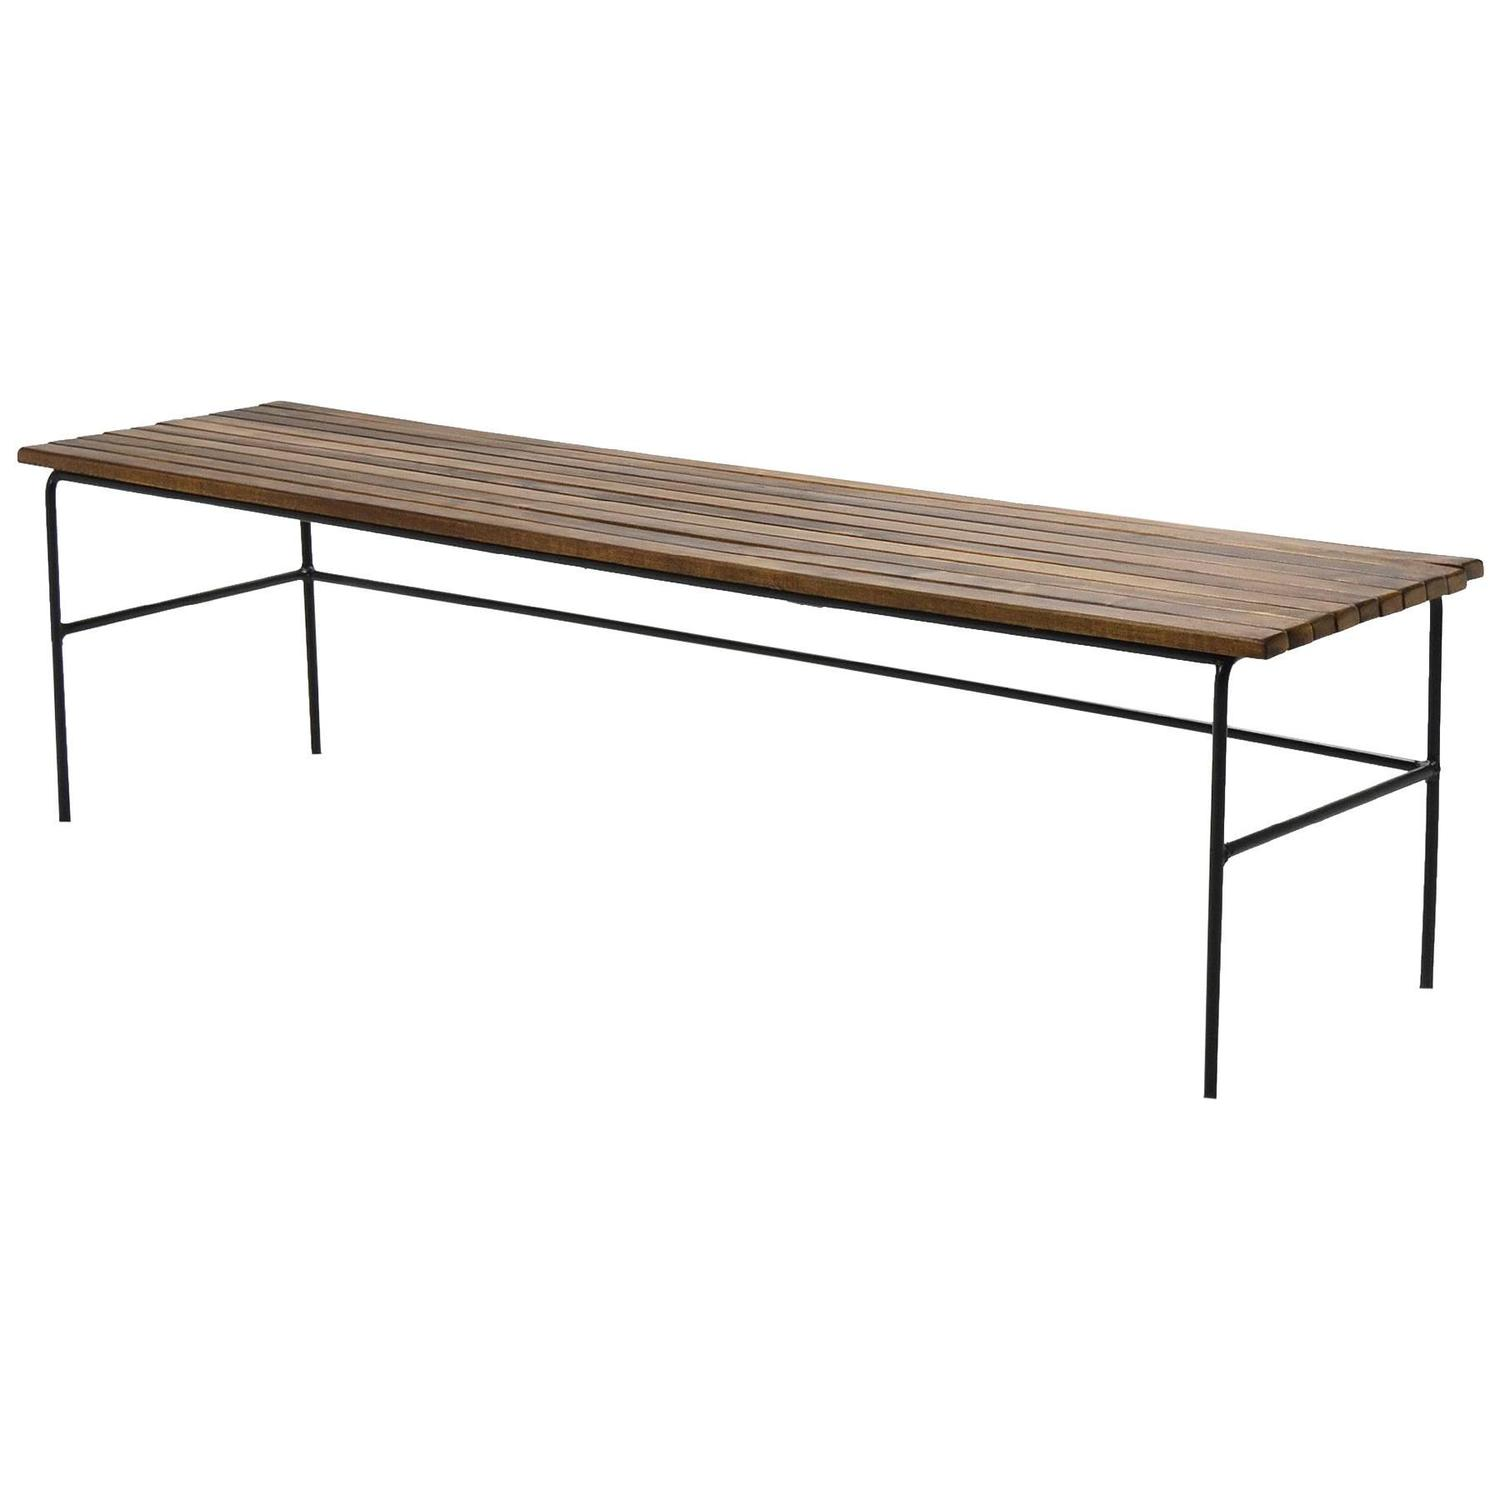 Arthur Umanoff Slat Bench Table at 1stdibs